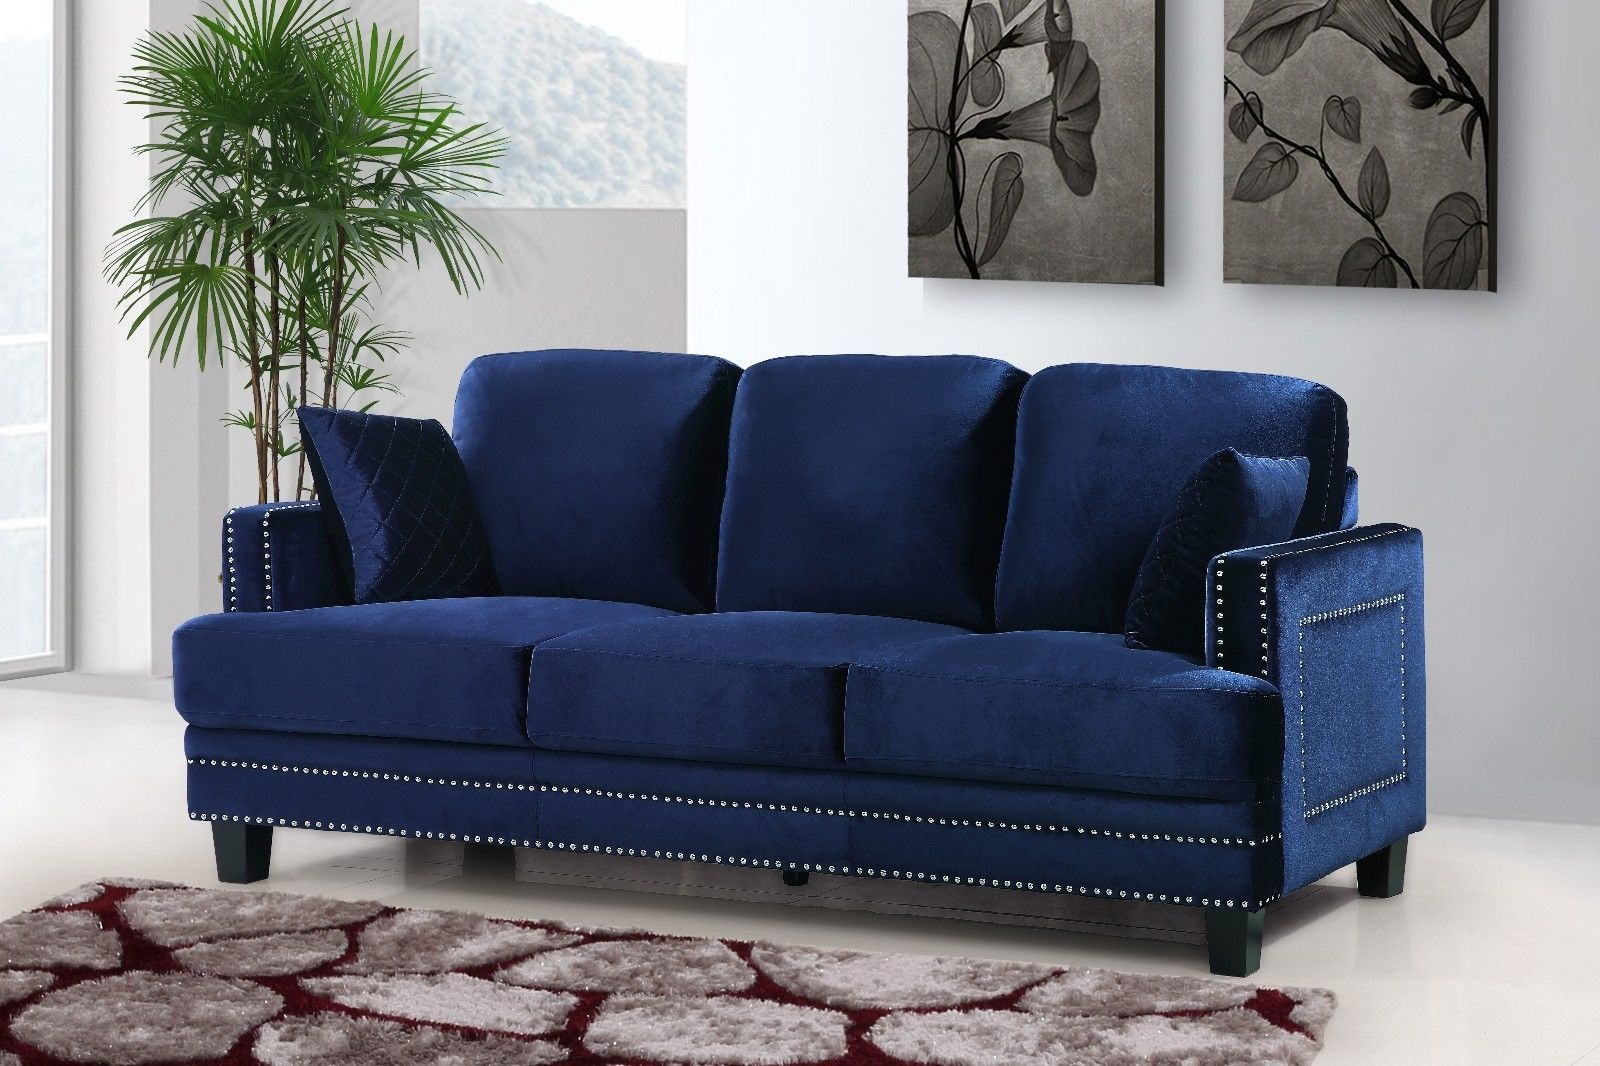 Meridian 655 Navy Velvet Leather Living Room Sofa Set 2pc.   Contemporary Style